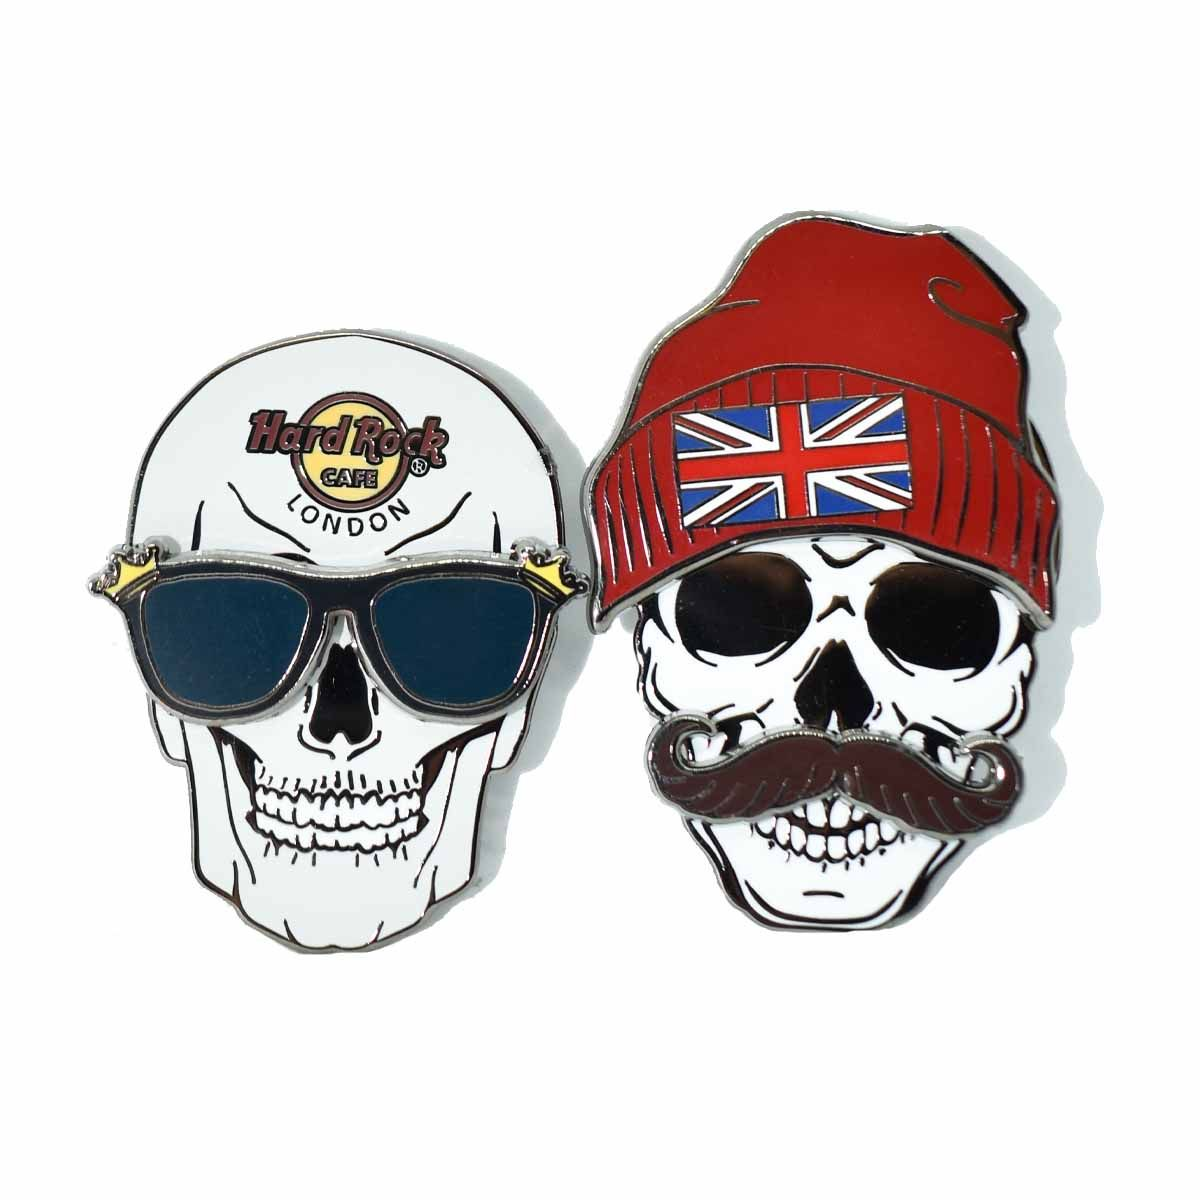 London Skull Booster Set